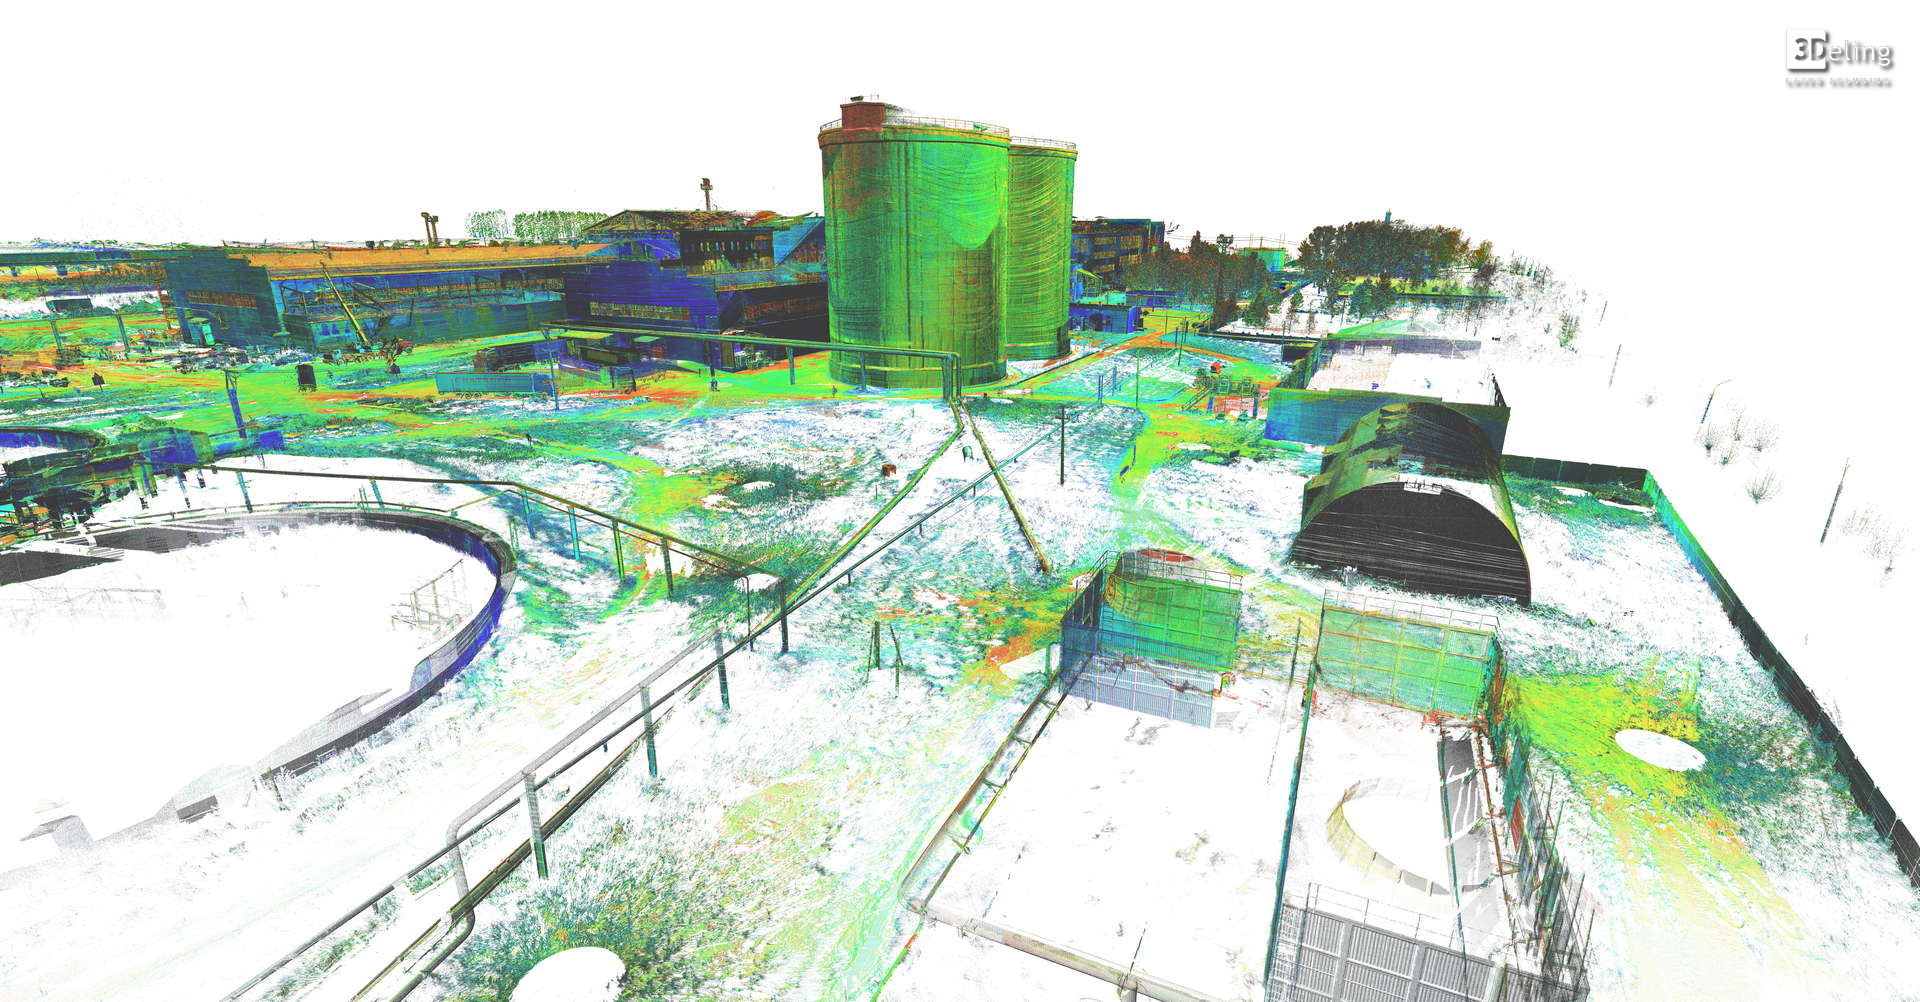 Laser scanning and 3D models of the Orel Sugar Refinery